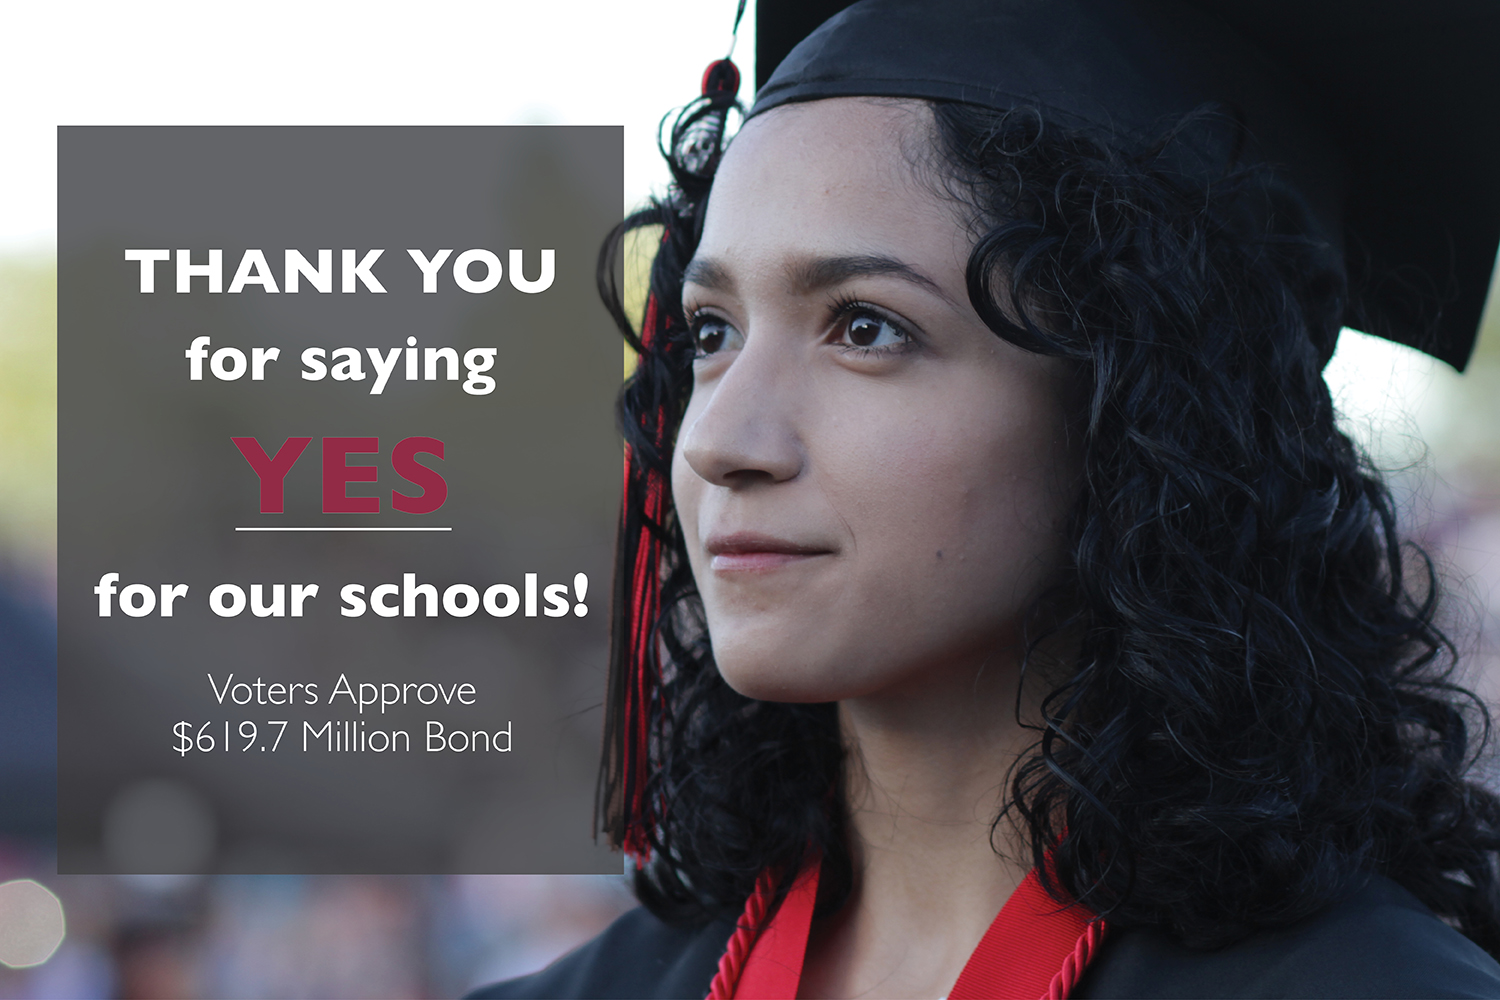 Thank You for saying YES to our schools!